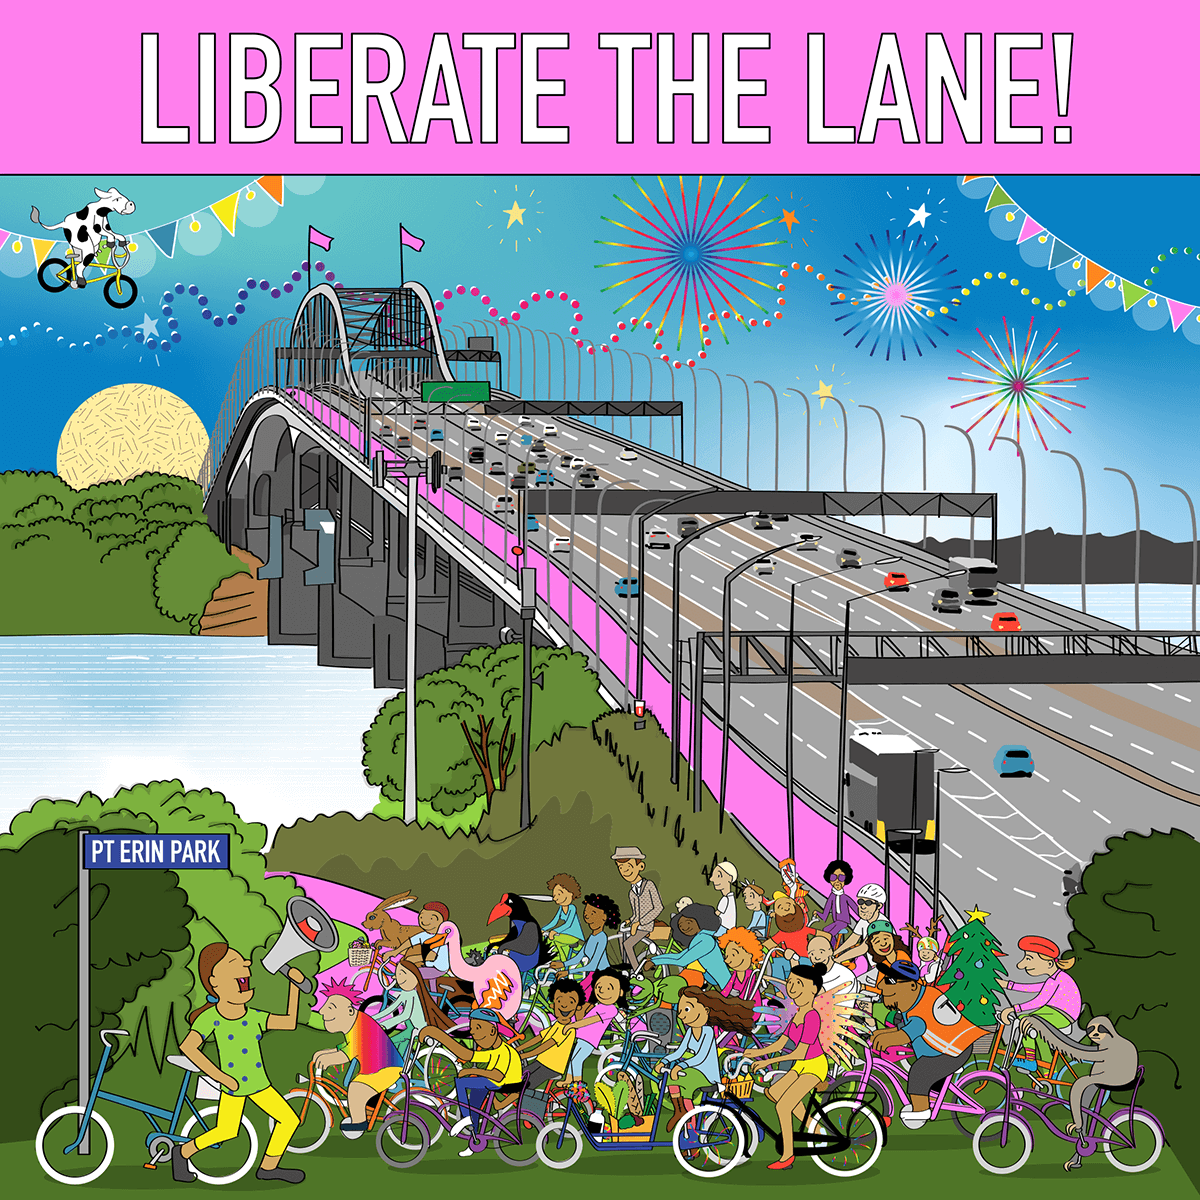 Liberate the Lane poster